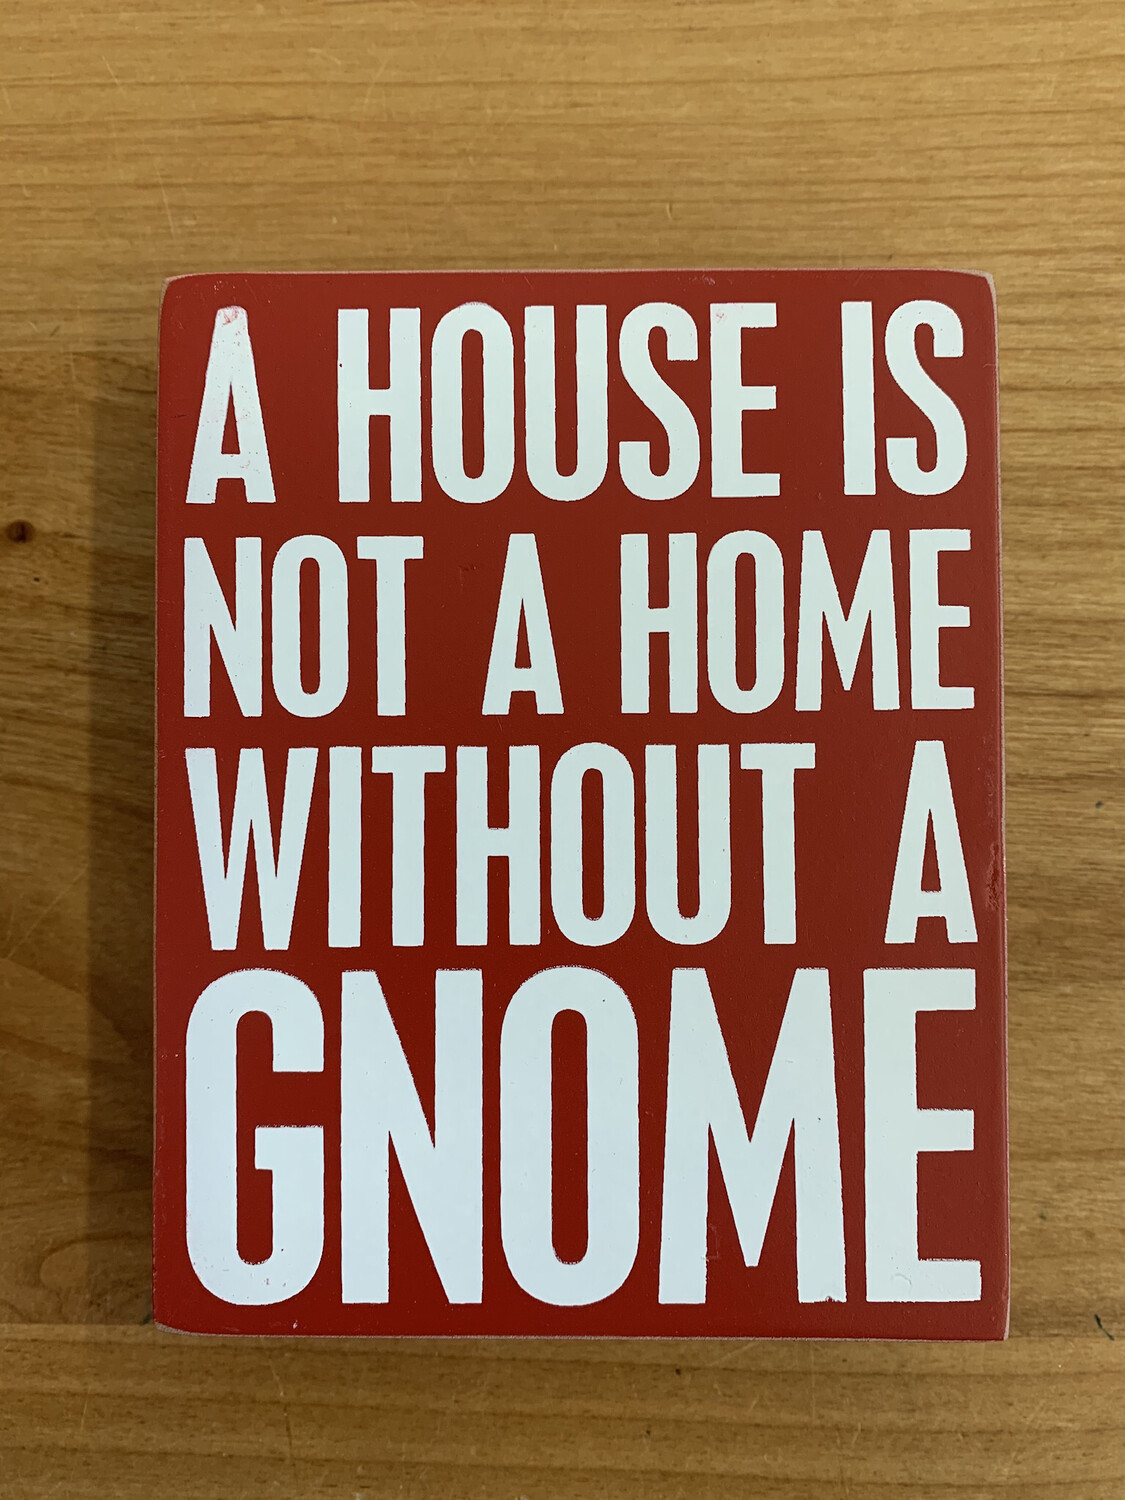 Without a Gnome